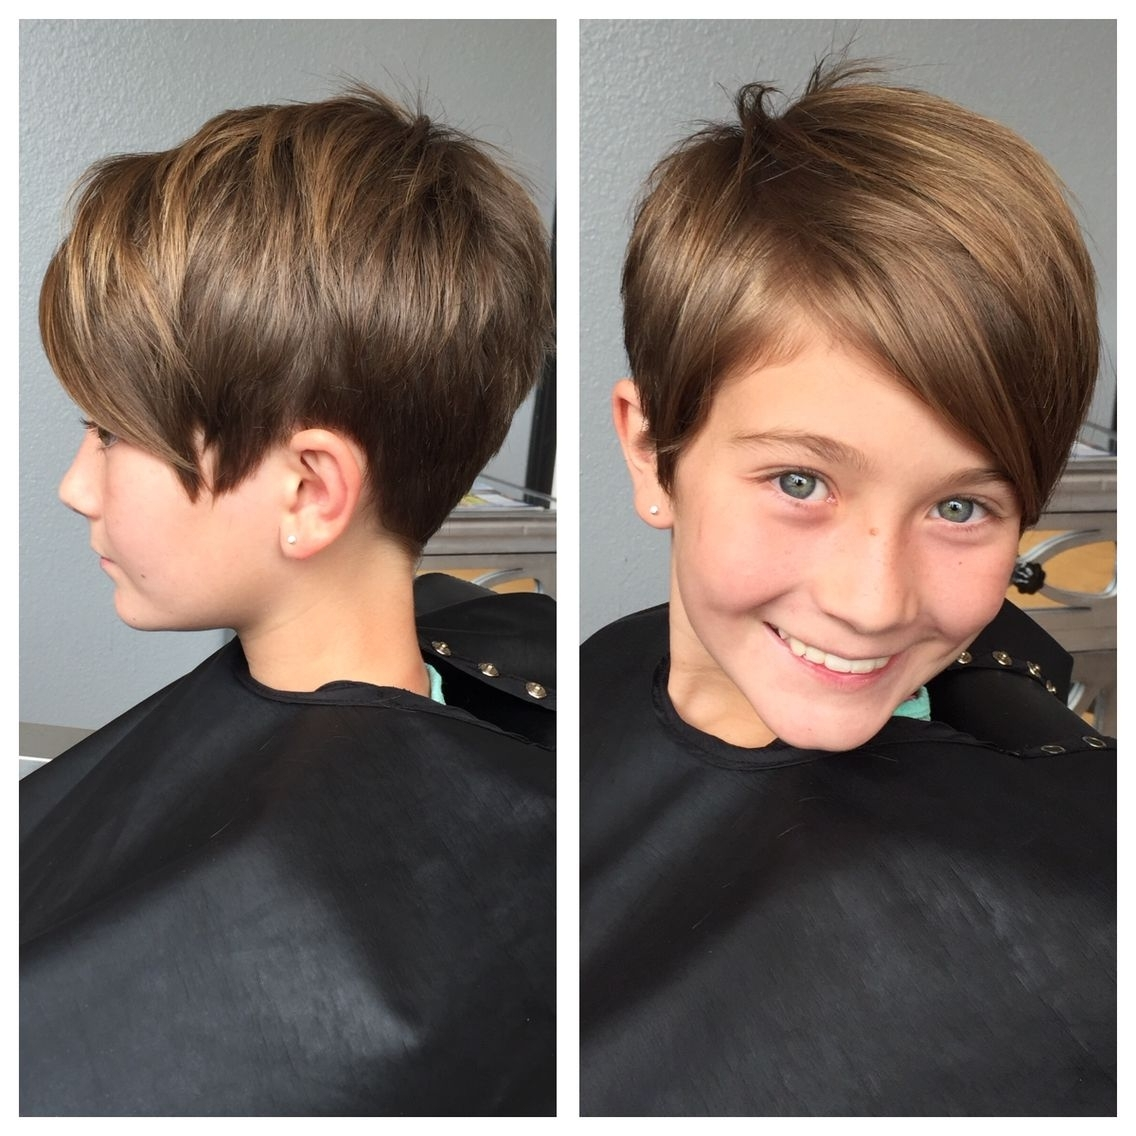 Kids Pixie Haircut   Hair   Pinterest   Pixie Haircut, Pixies And Pertaining To Newest Pixie Hairstyles For Girls (View 14 of 15)